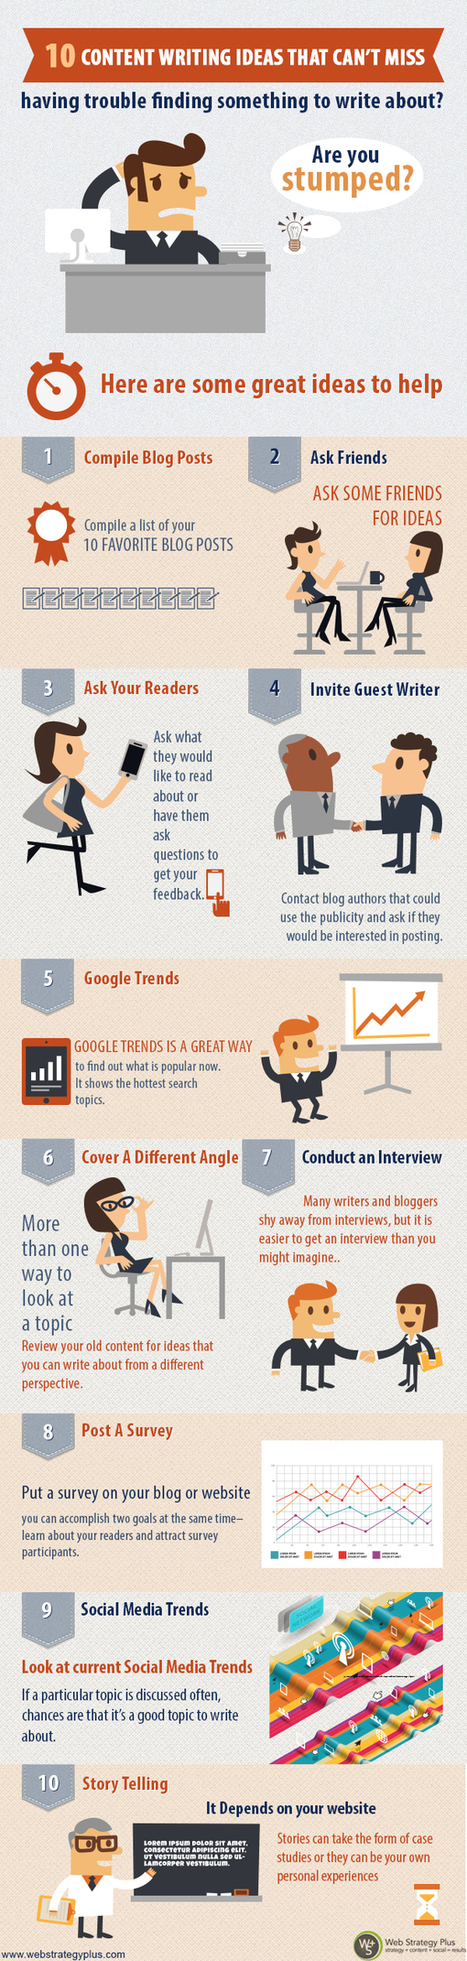 Infographic - 10 Content Writing Ideas That Can't Miss   Social Media, Web Marketing, Blogging & Search Engines   Scoop.it